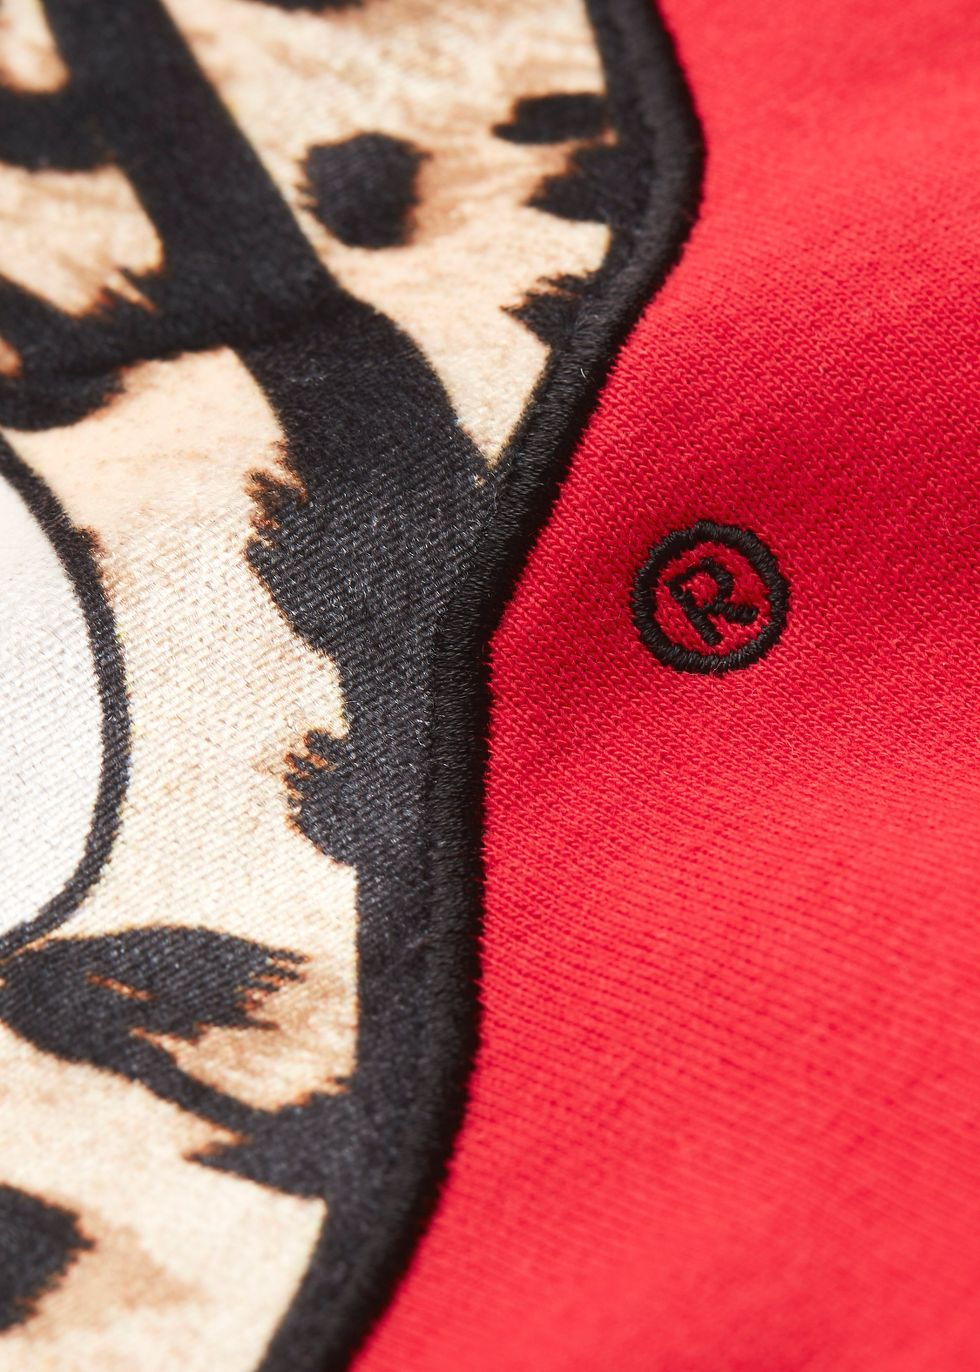 Rolling Stones Sweater | The Sting